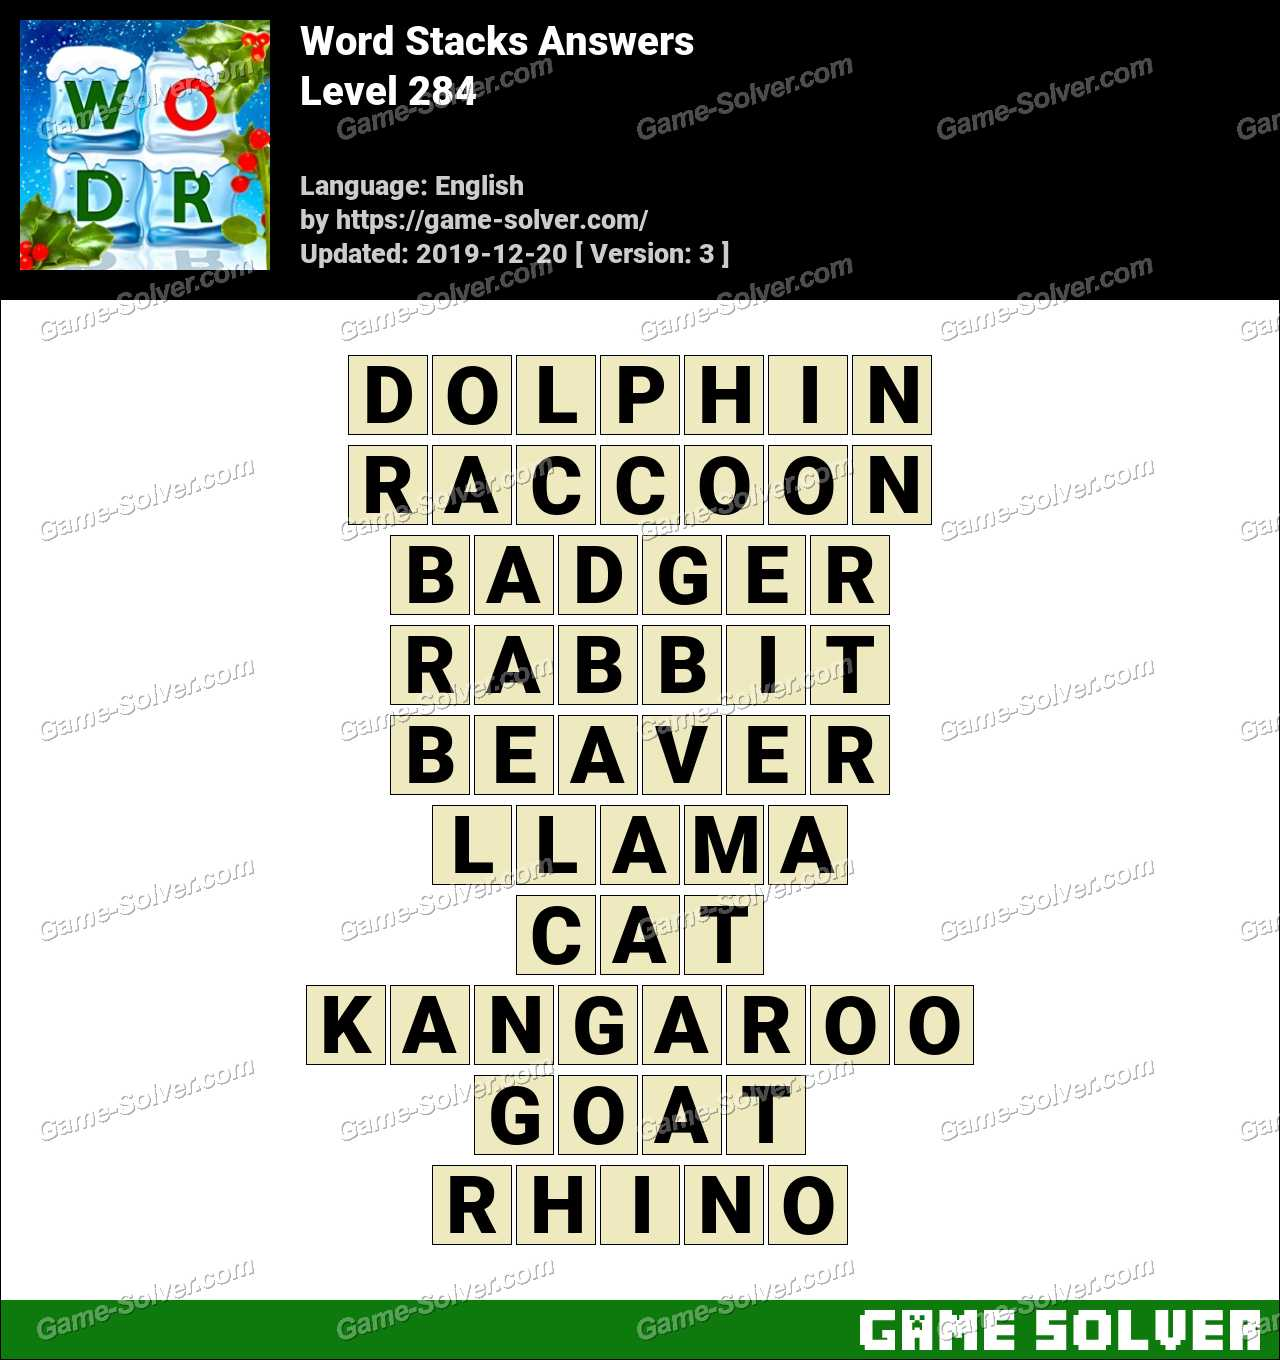 Word Stacks Level 284 Answers